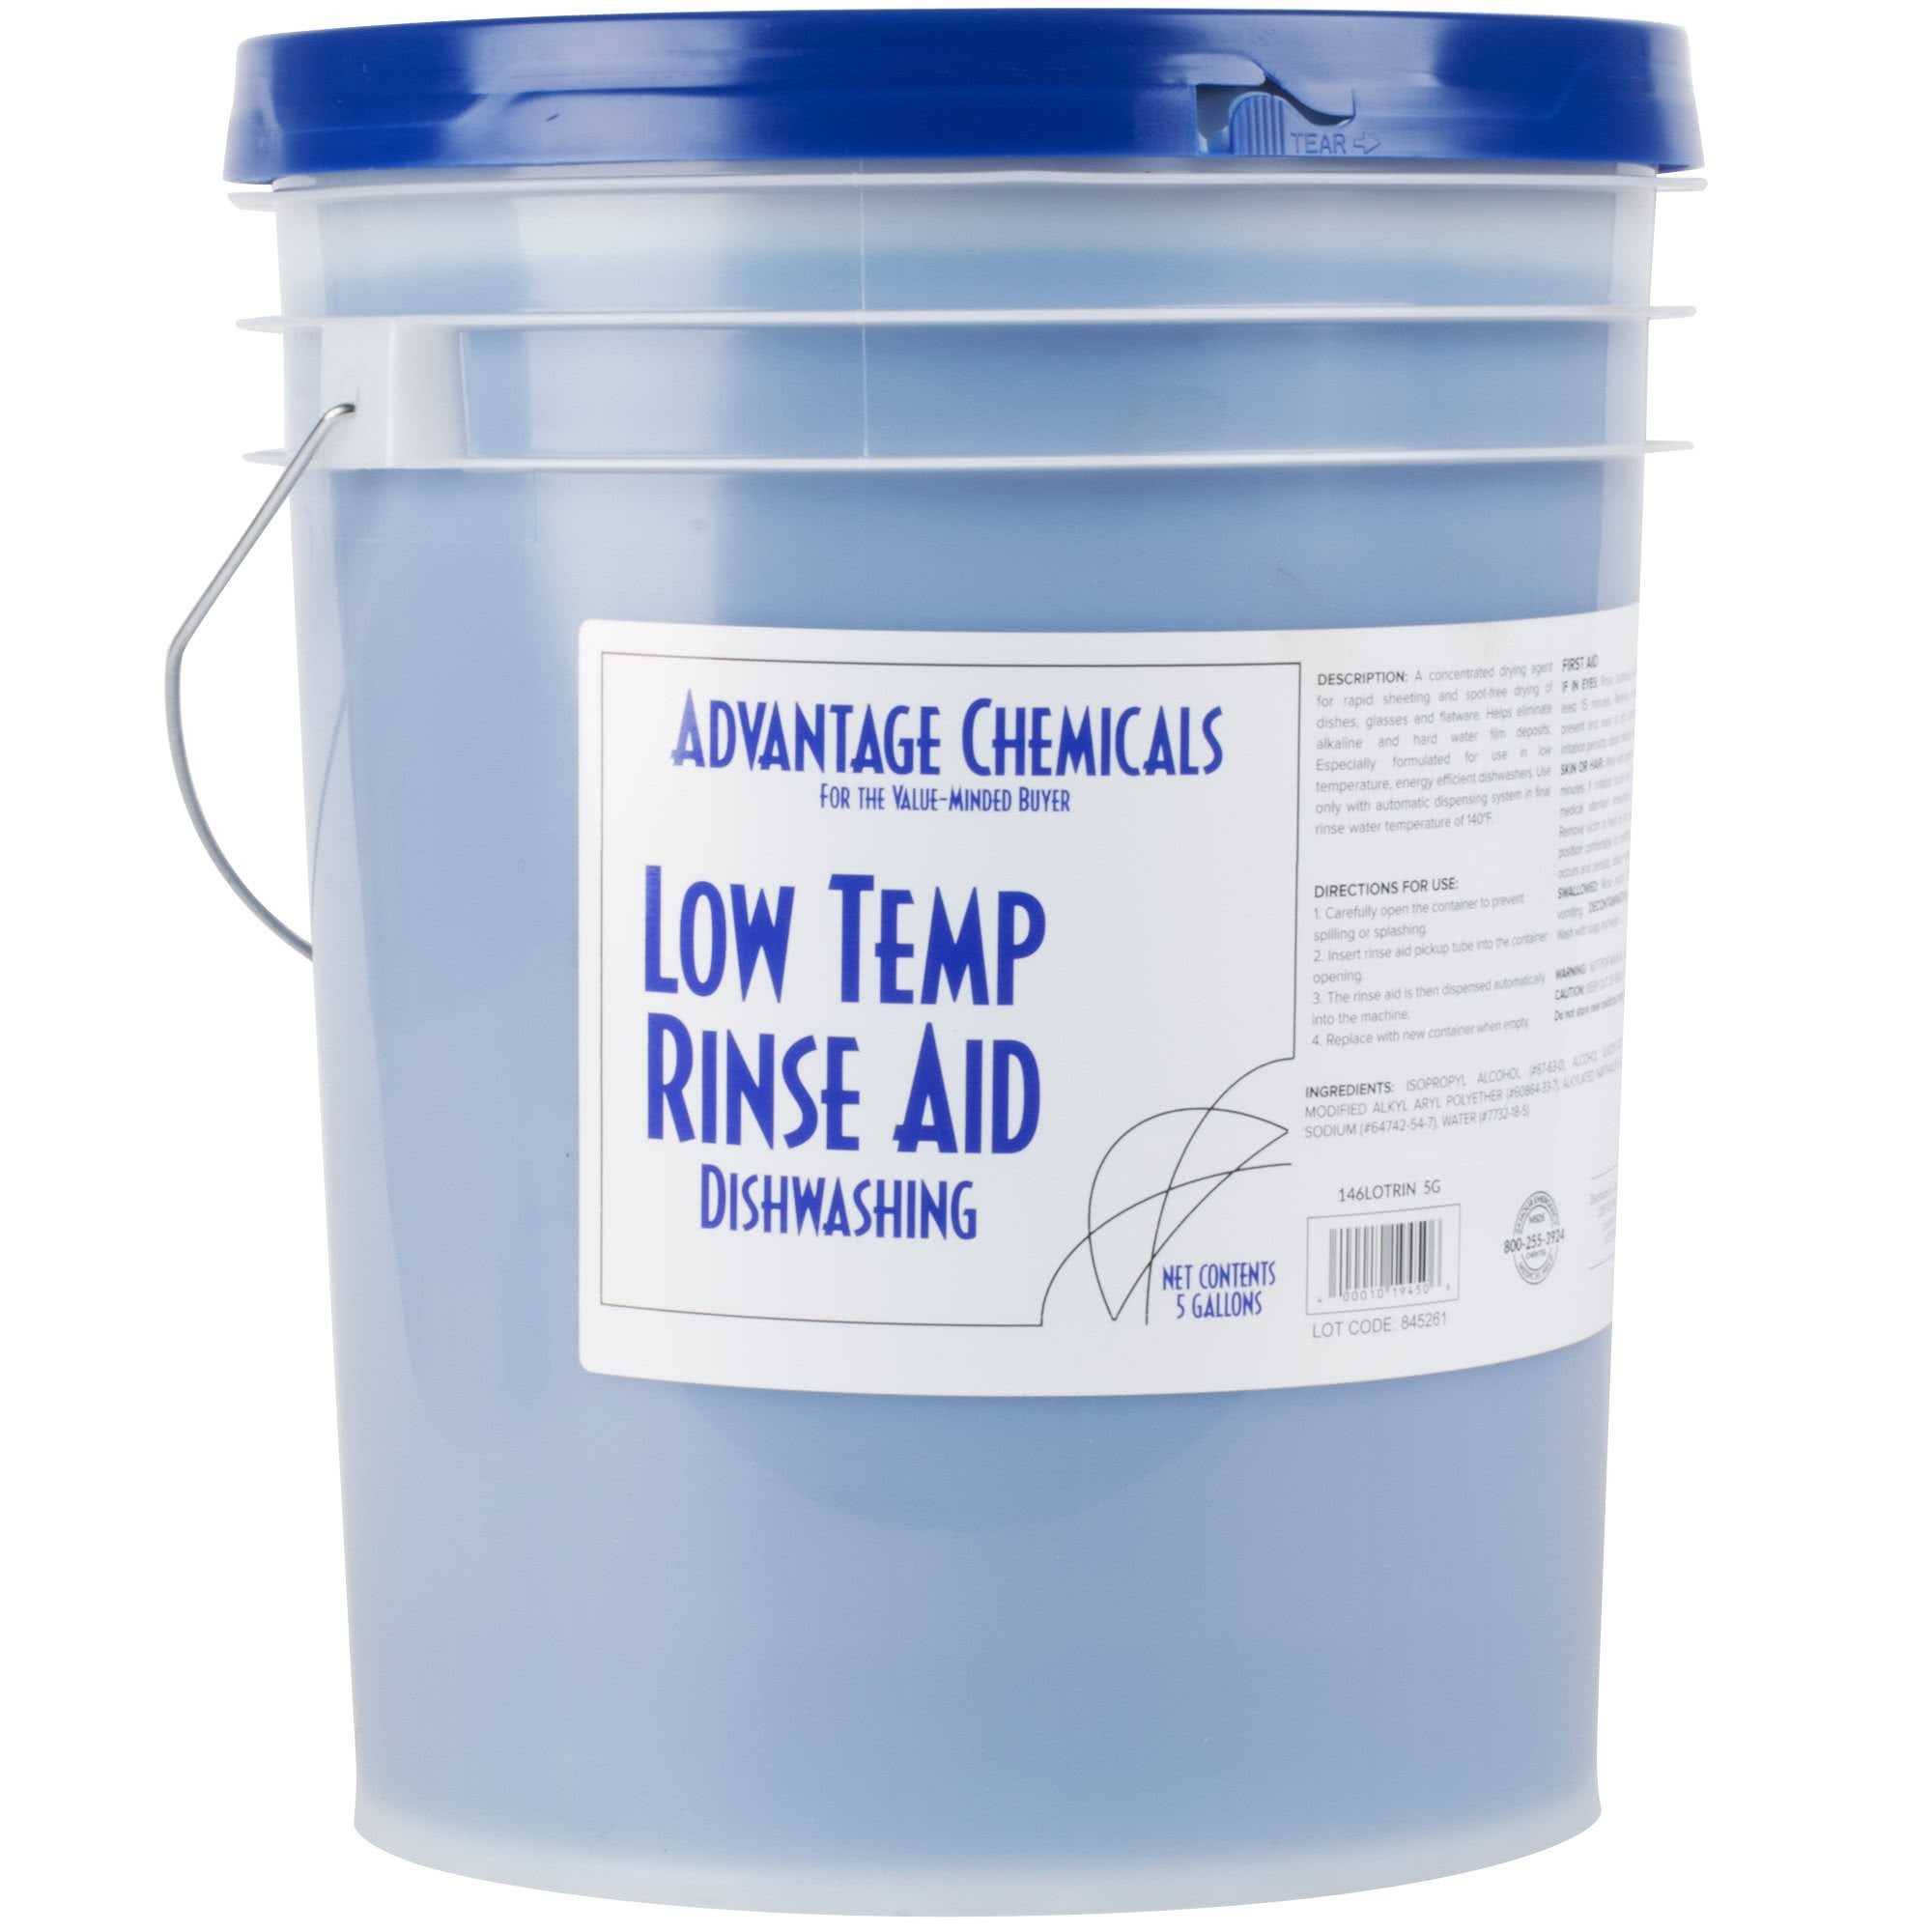 Advantage Chemicals 5 Gallon / 640 oz. Low Temperature Dish Washing Machine Rinse Aid by TableTop King (Image #1)